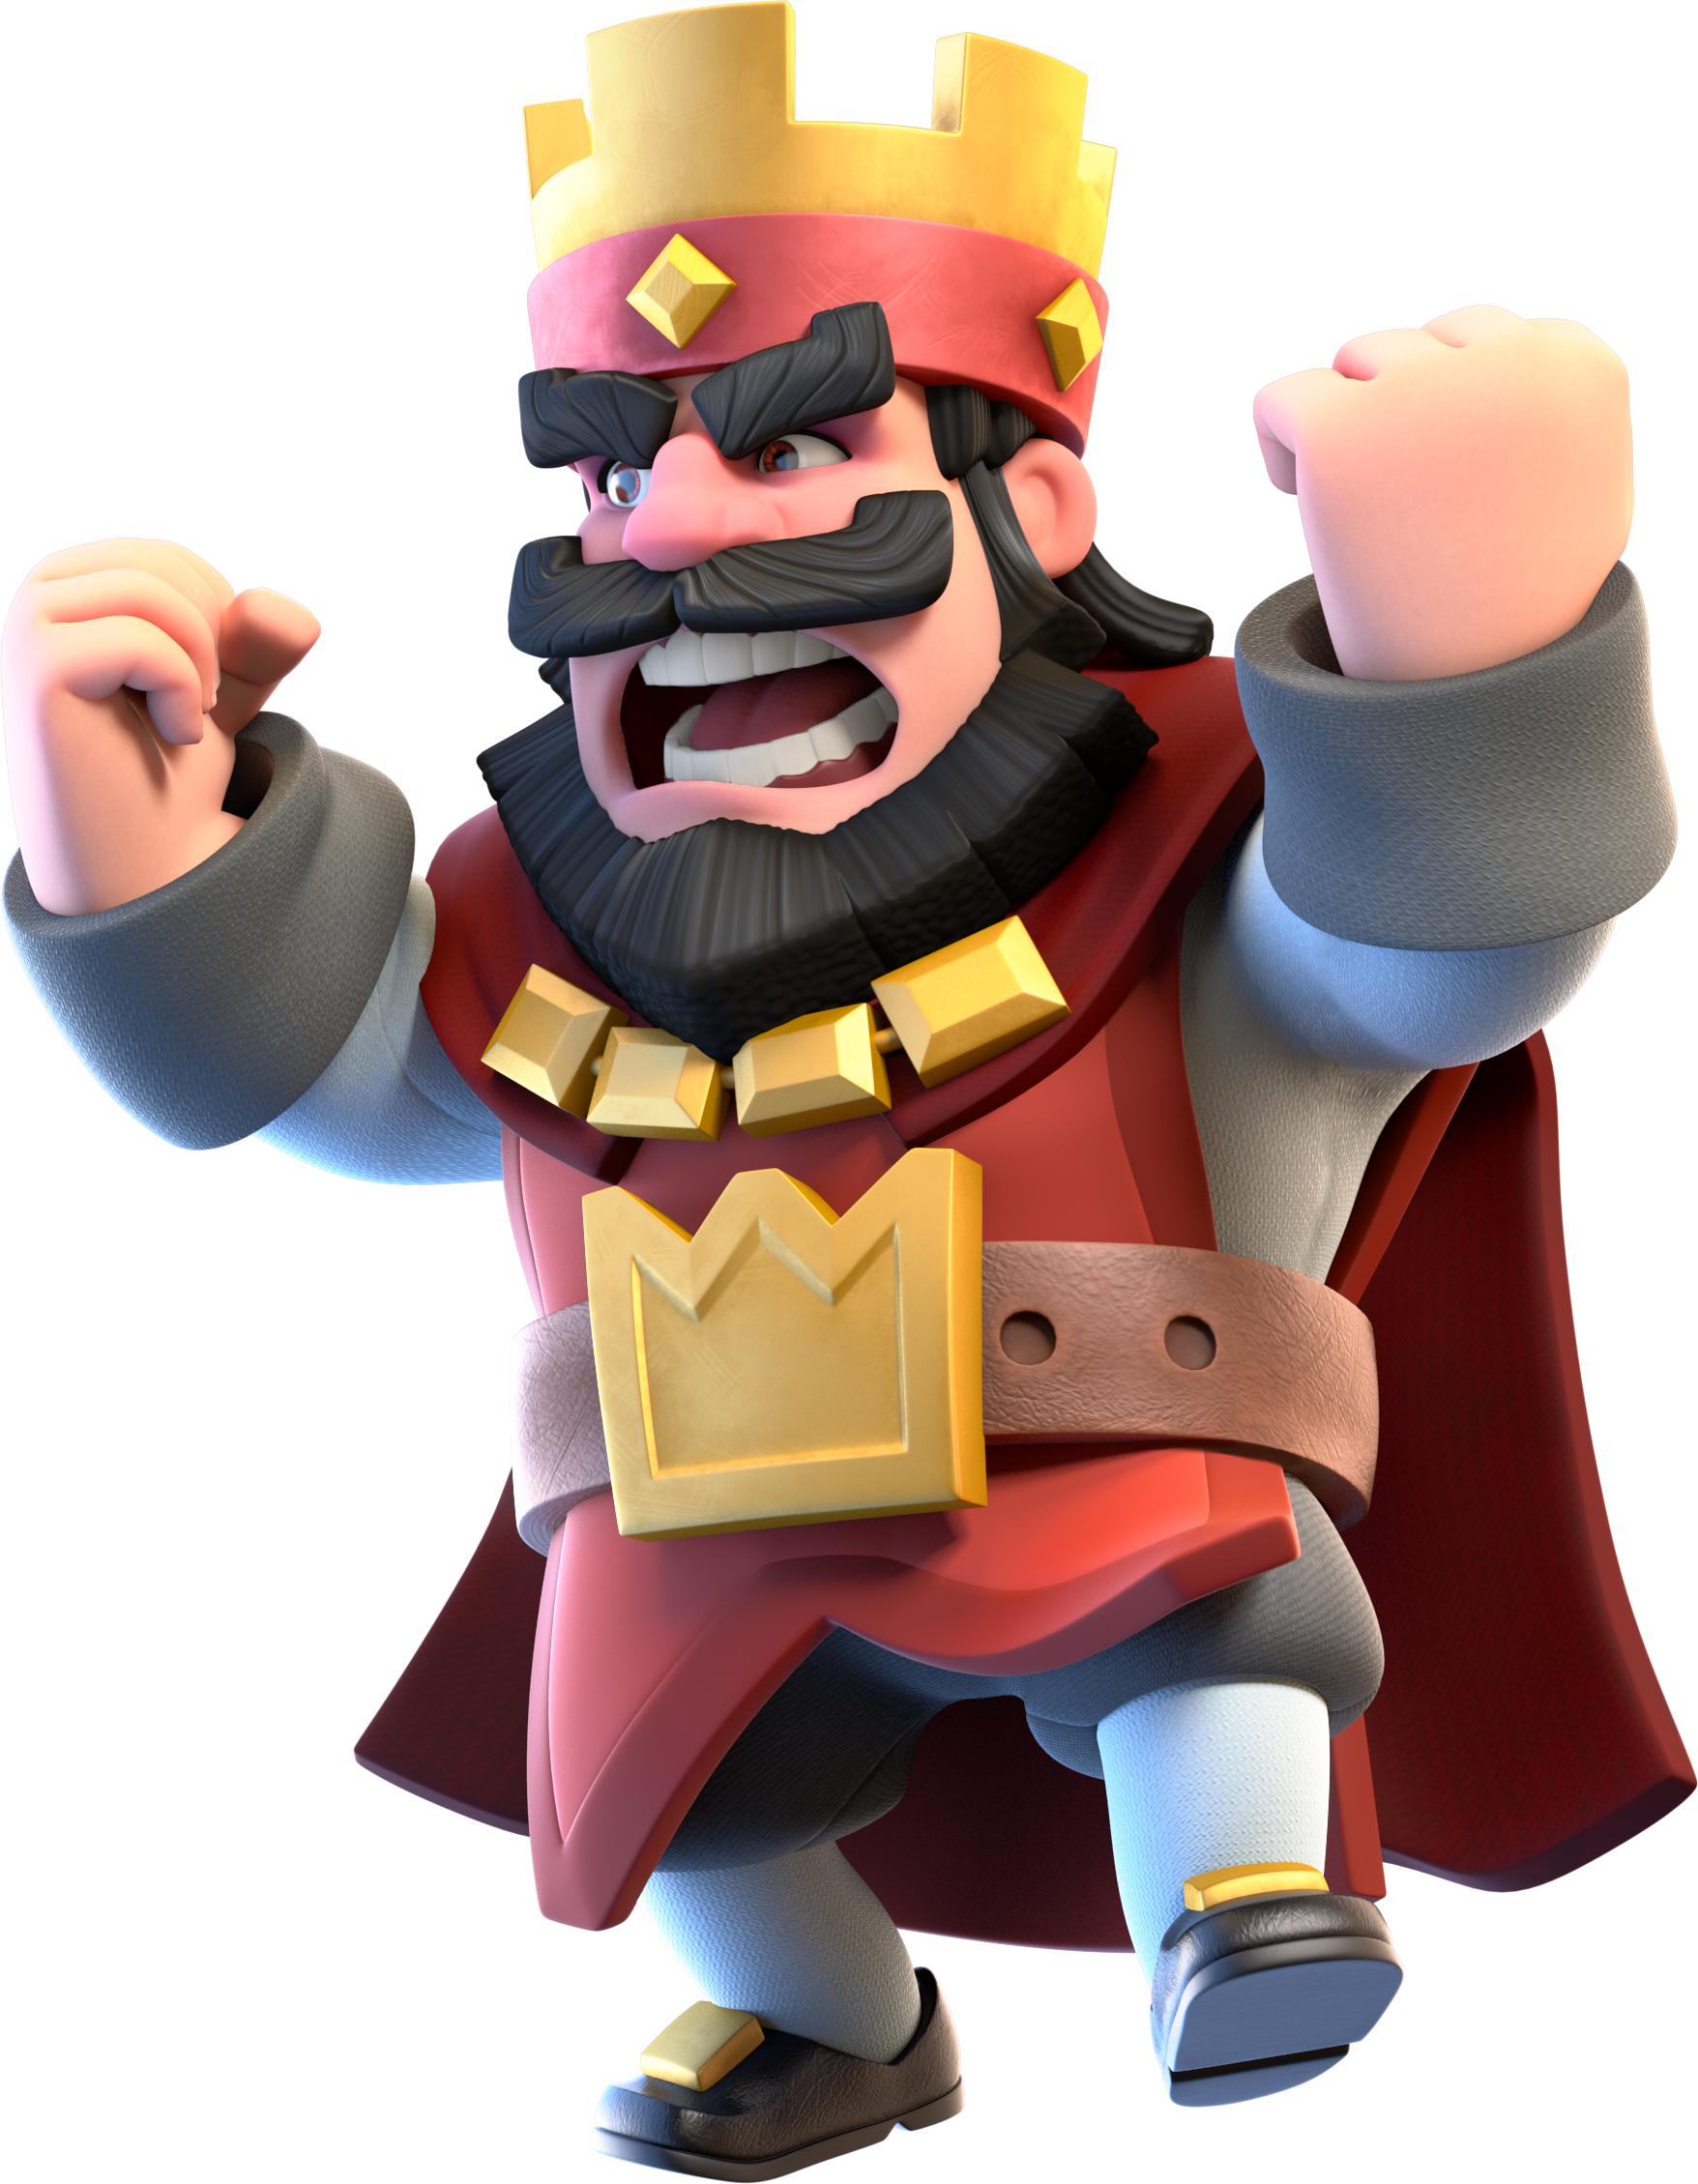 image red king angry png clash royale wiki fandom